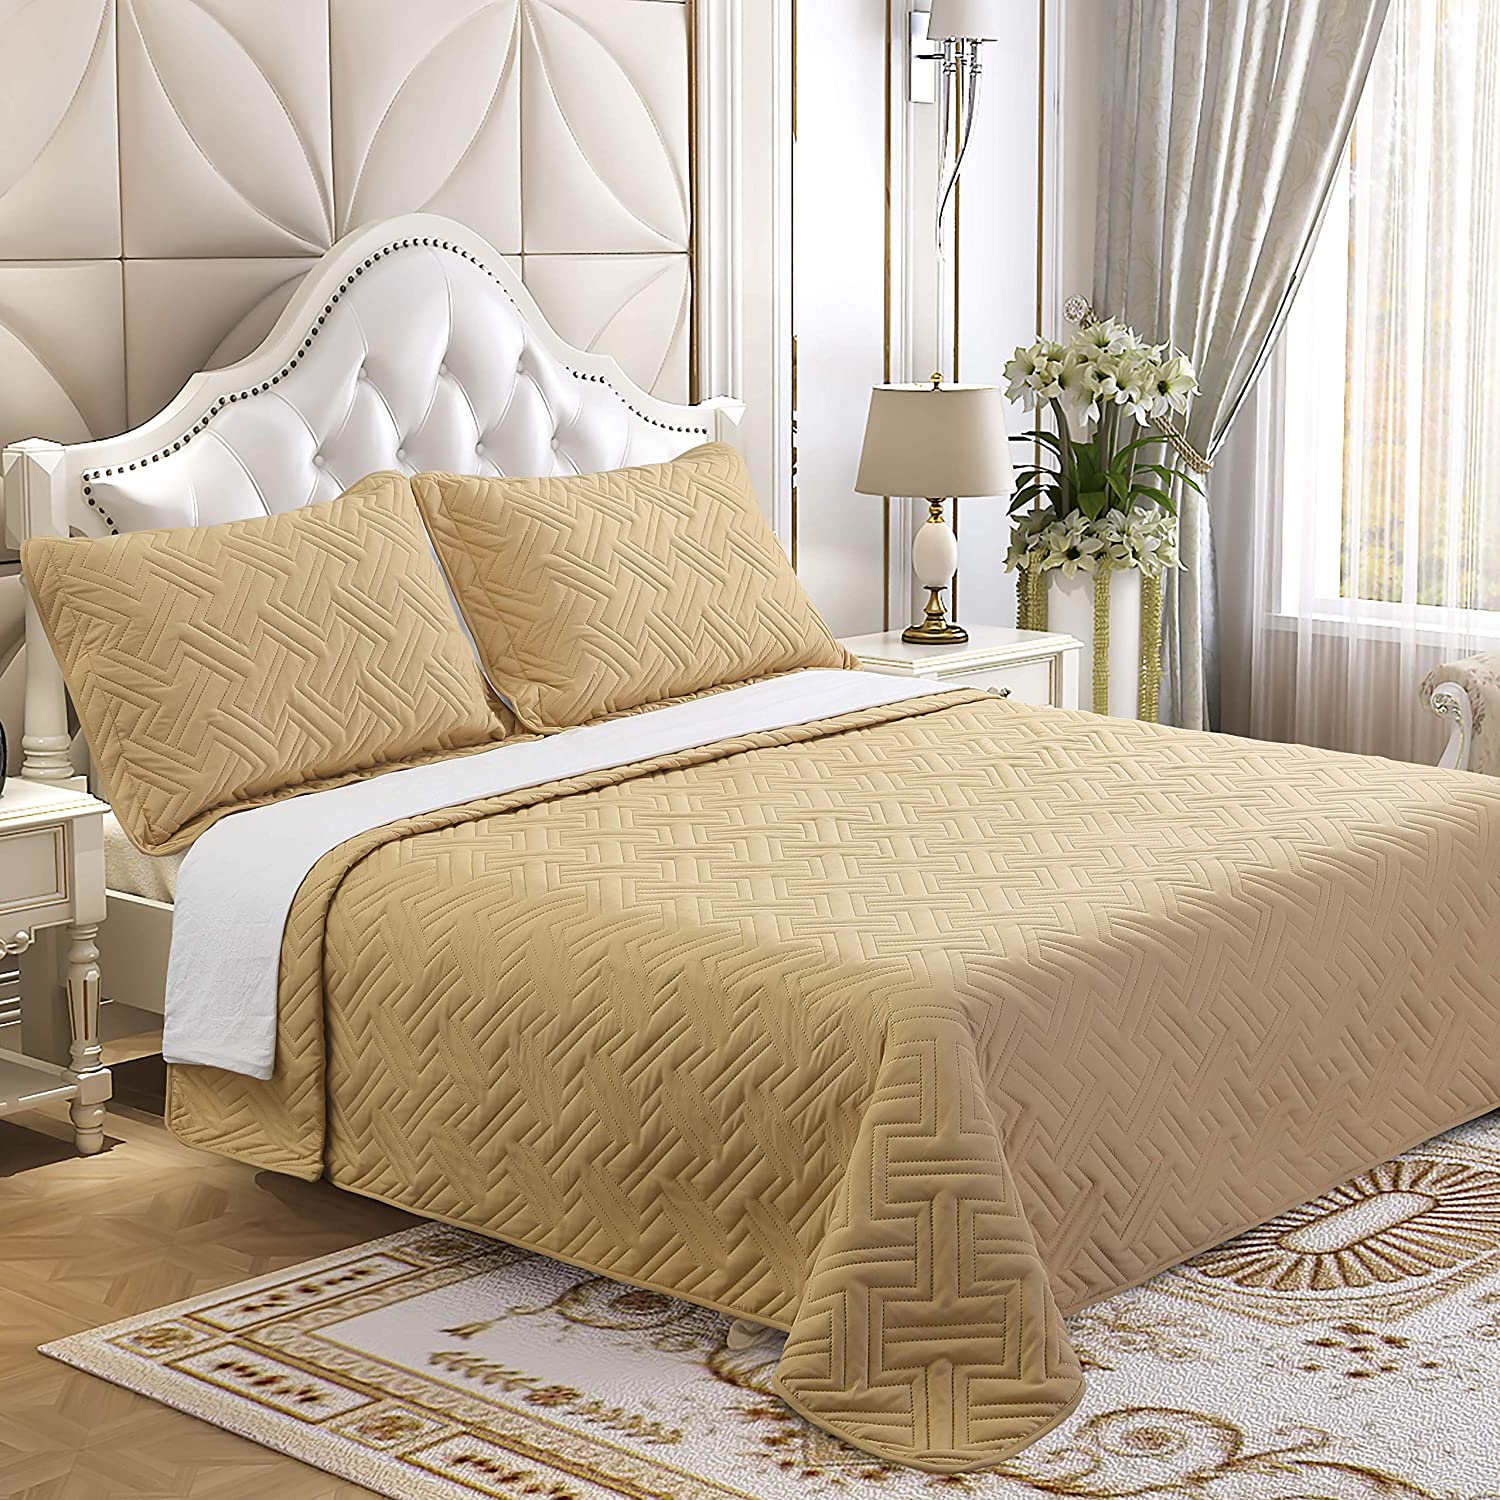 Lorient Home Brushed Microfiber Embossed 2 Piece Twin Lightweight Quilt Set for Coverlet or Blanket Taupe Bedding, Multi